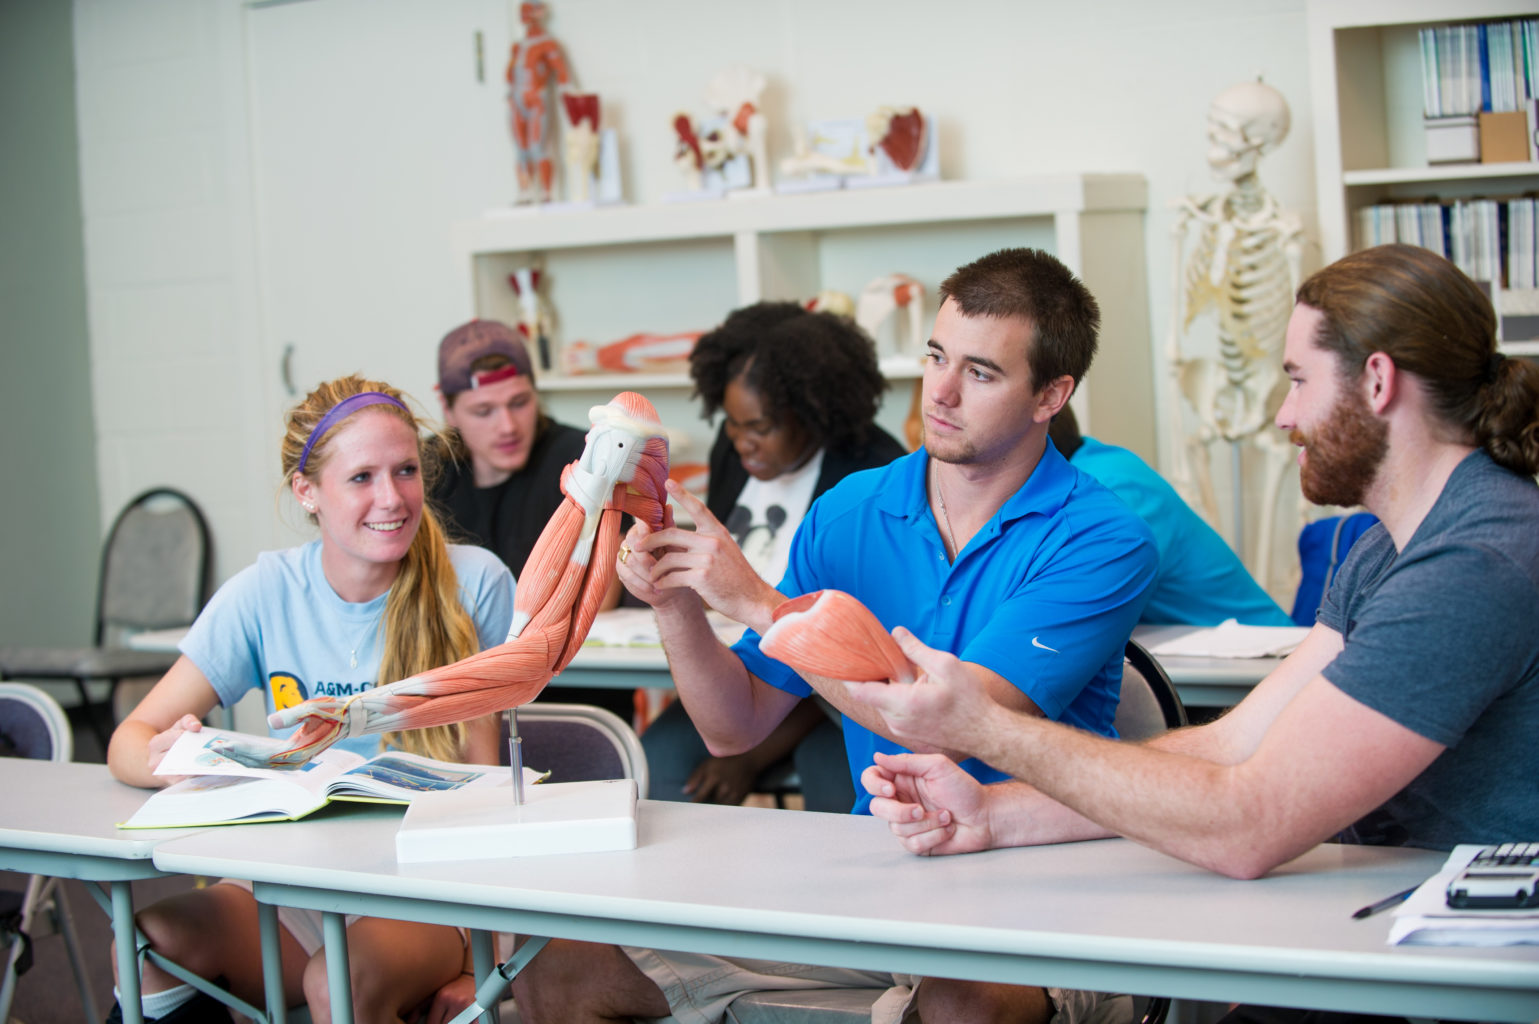 Students inspecting a skeleton with muscle structure